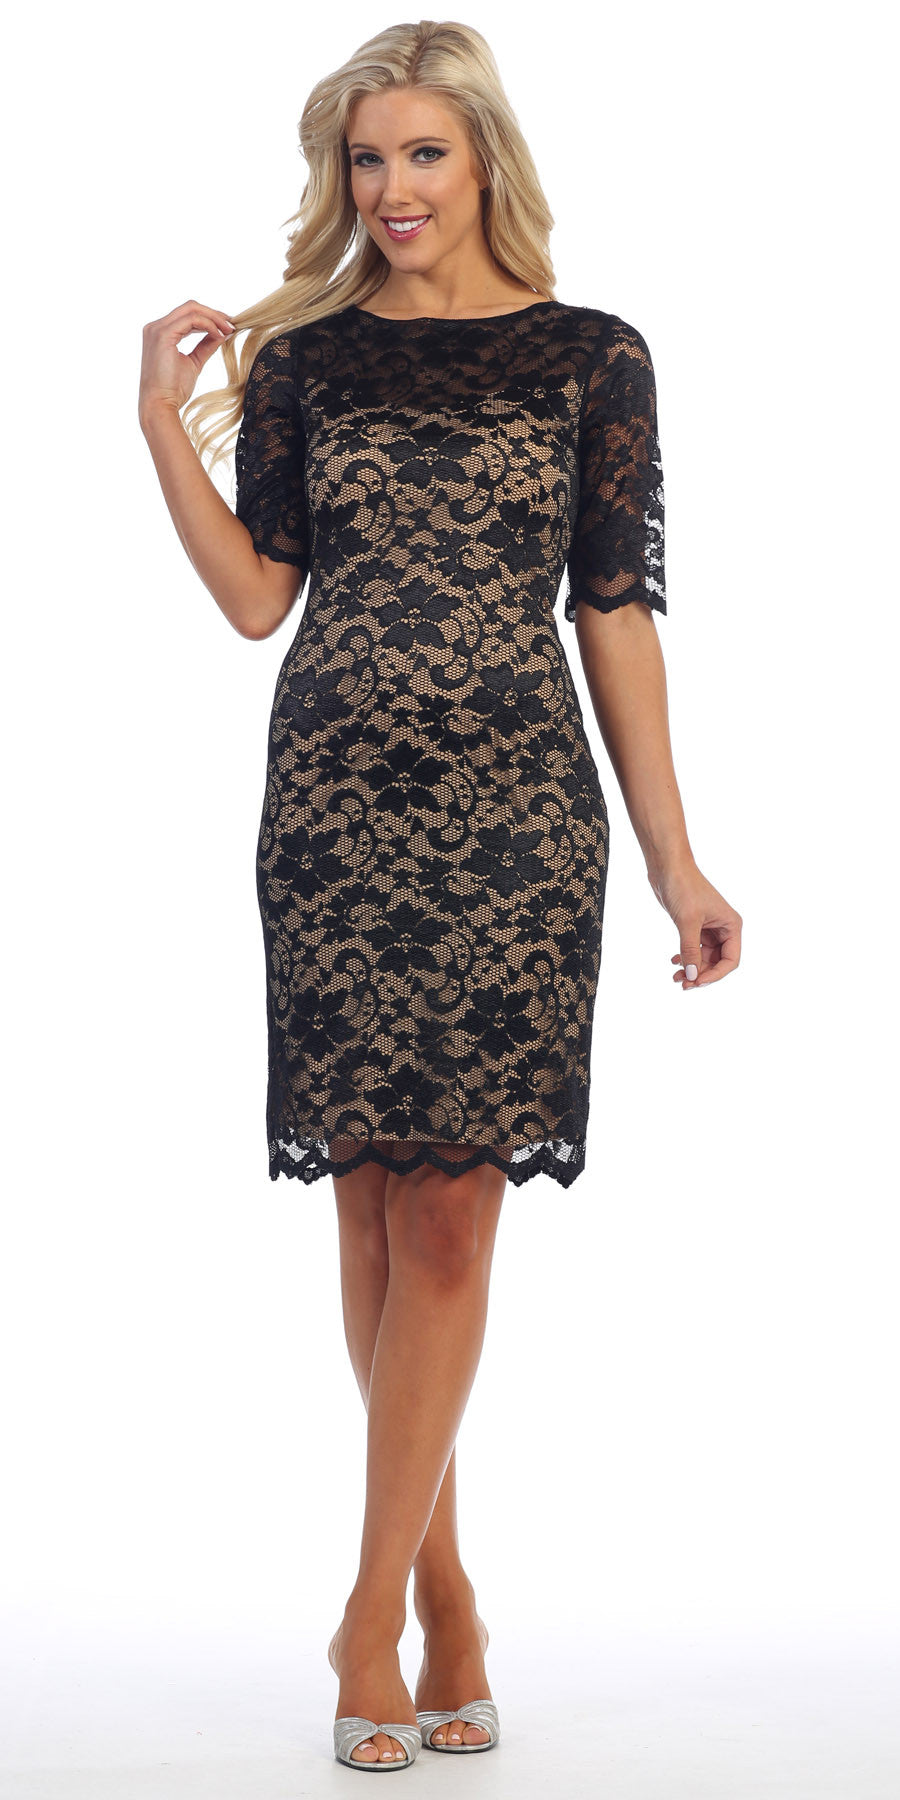 Lace Cocktail Dress Knee Length Black/Nude 3/4 Length Sleeves